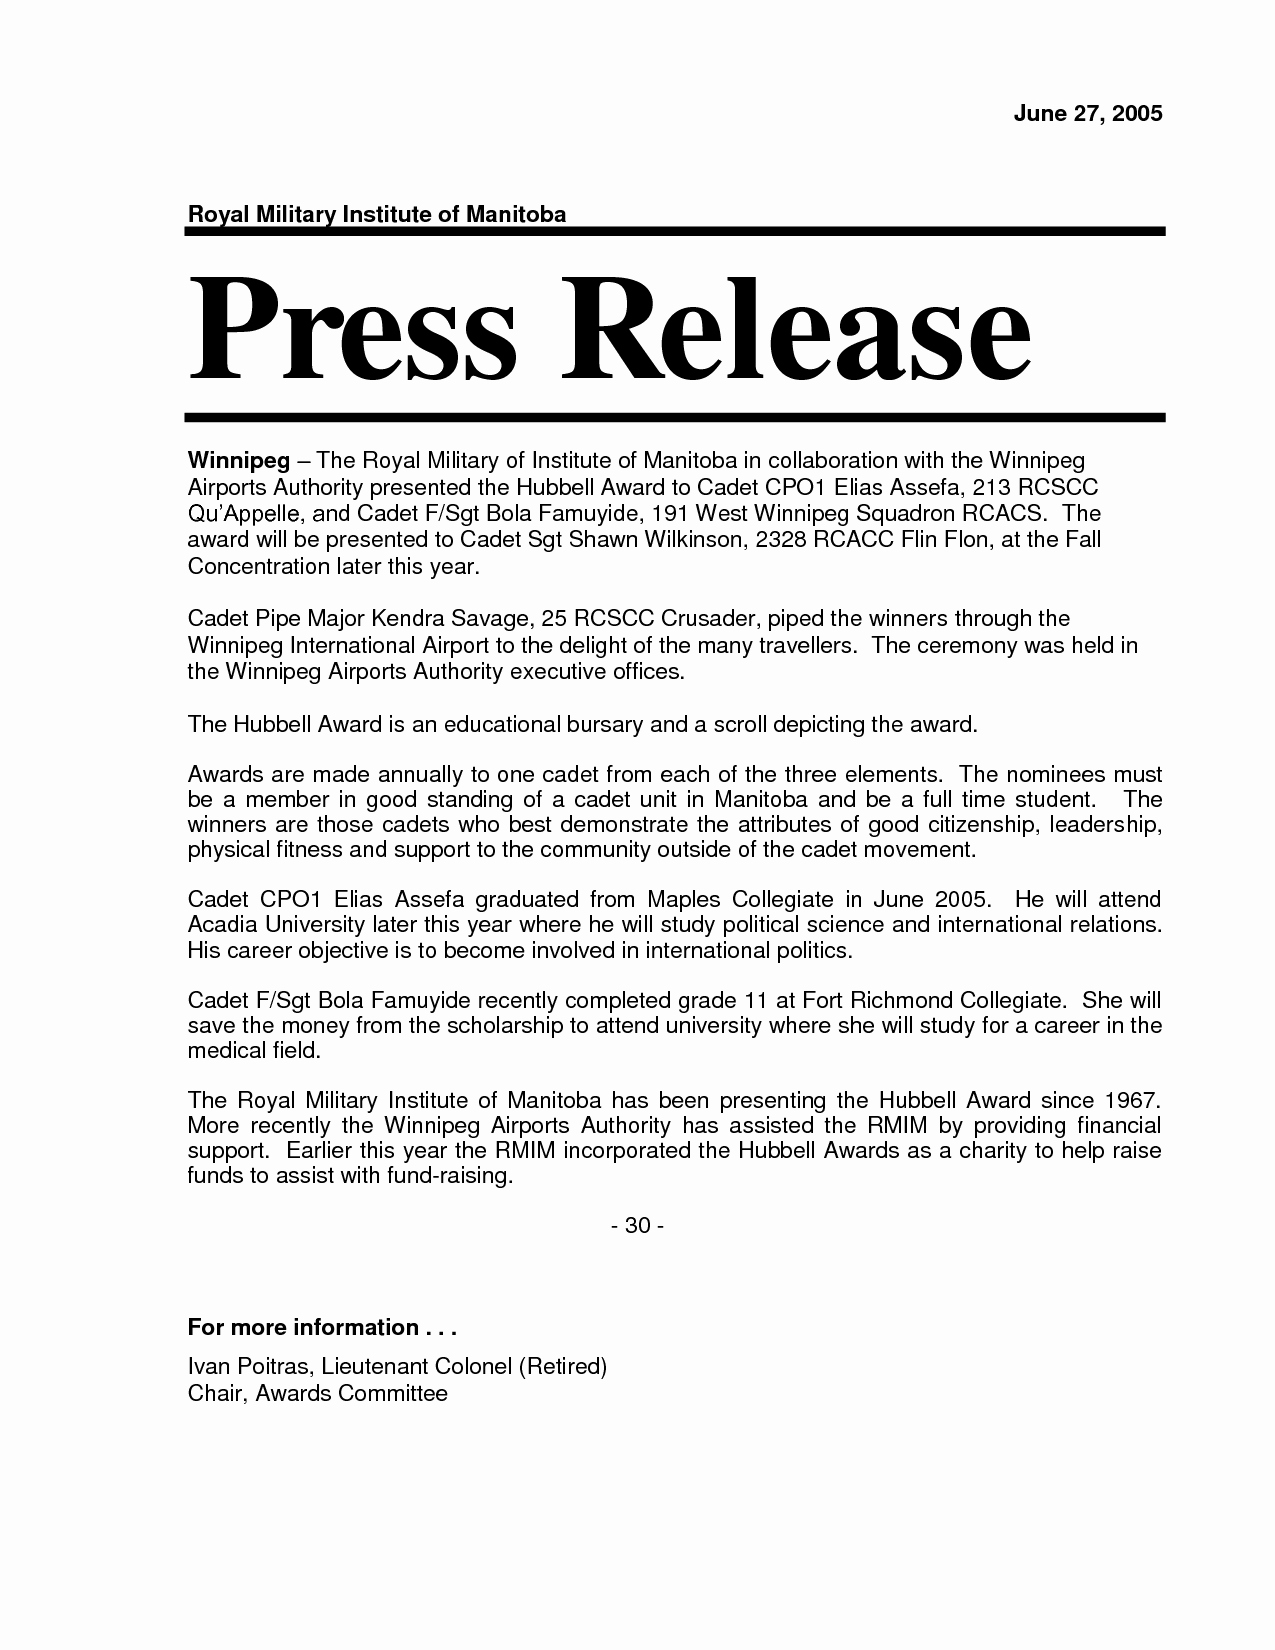 Press Release format Template New 10 Best Of New Pany Press Release New Business